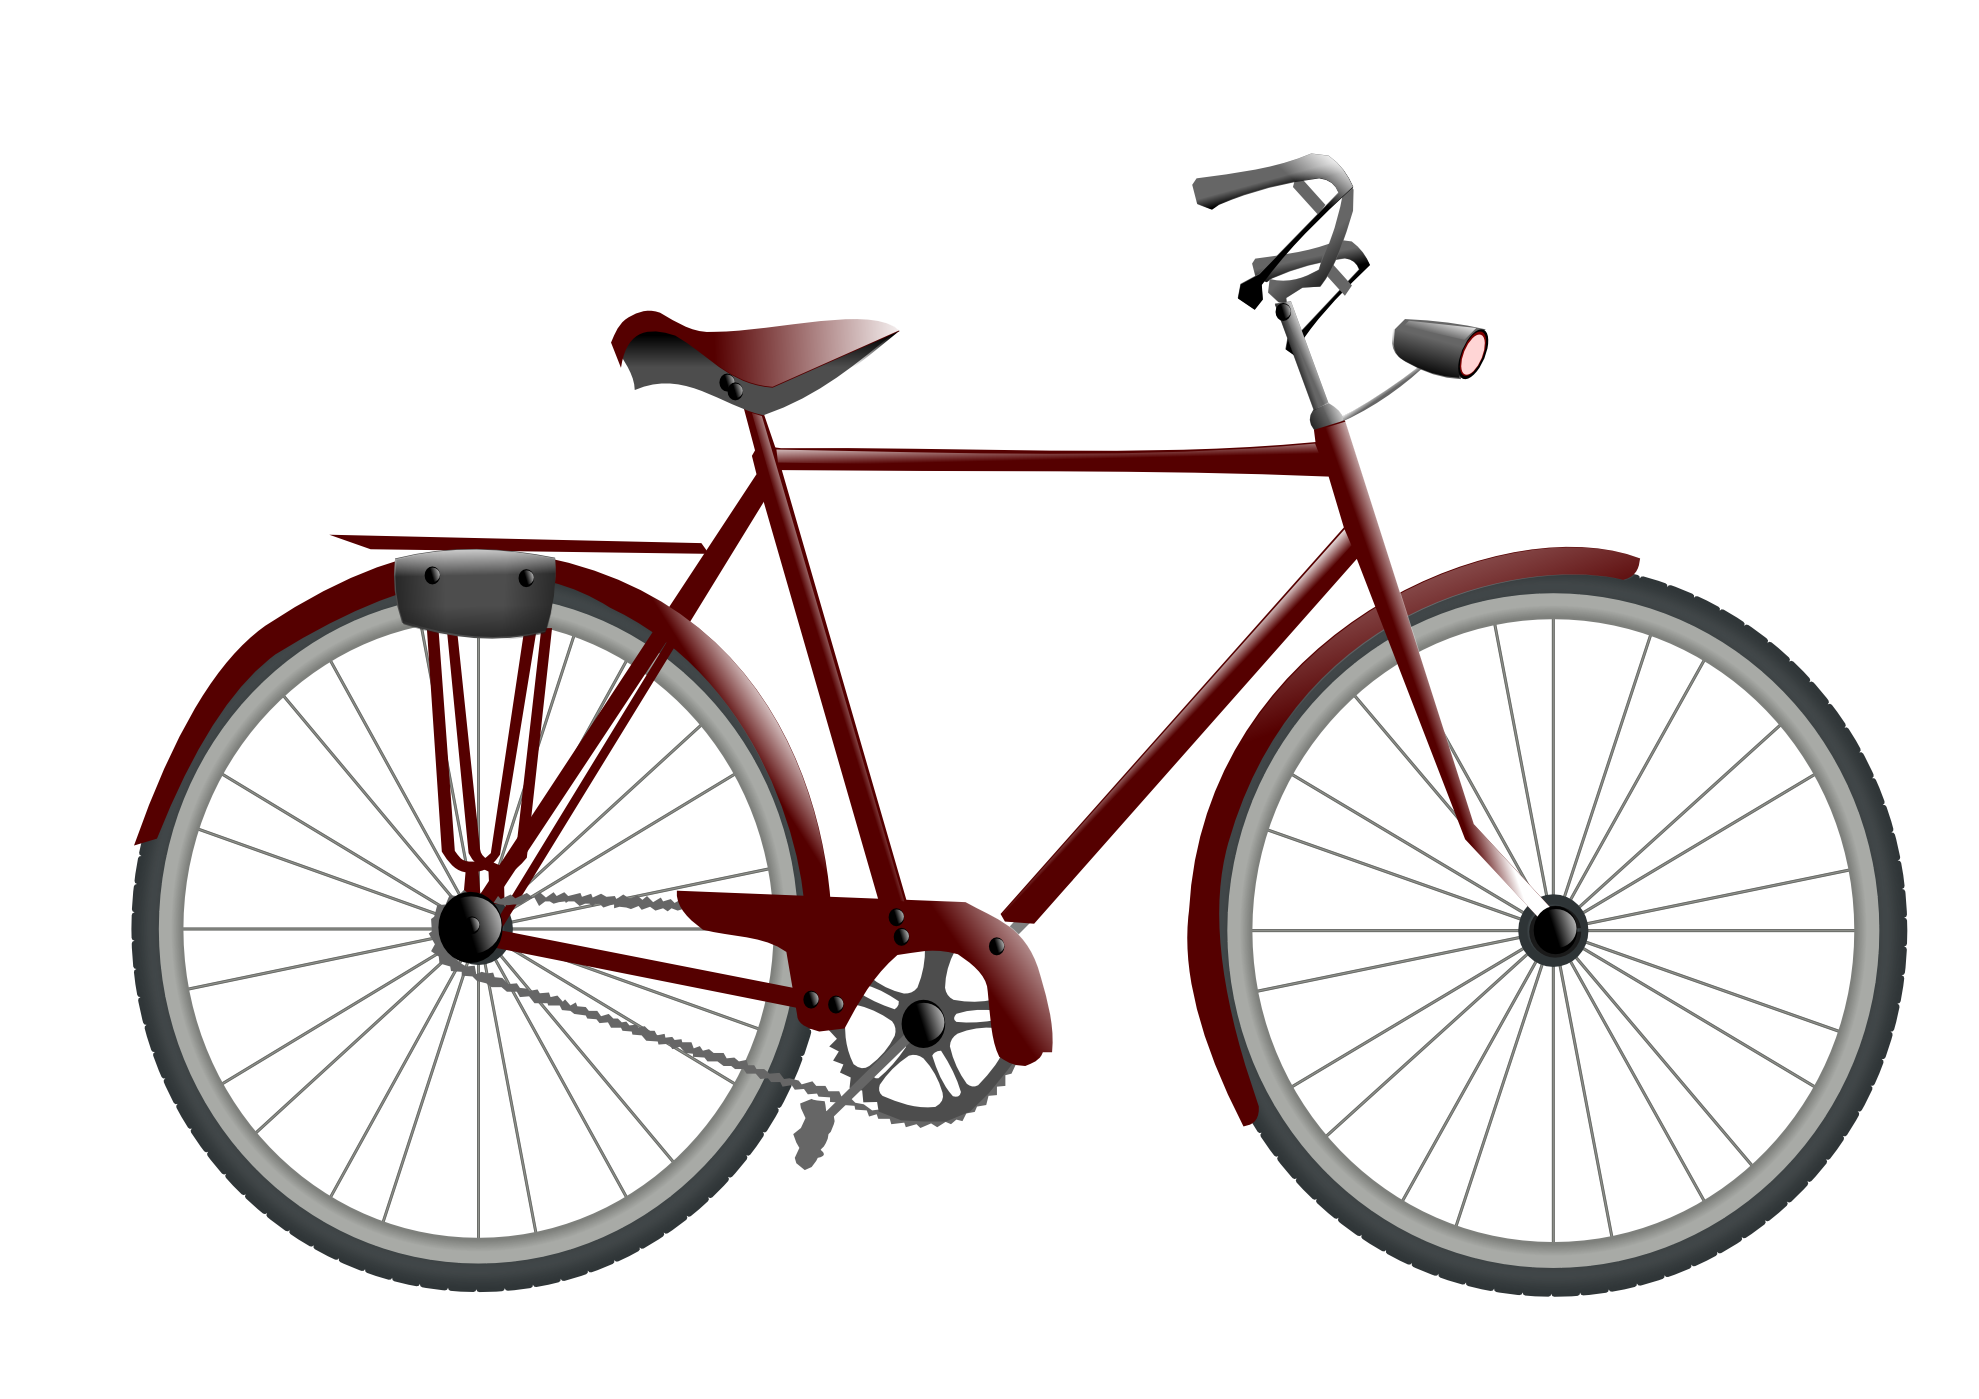 Drawn Bicycle Design